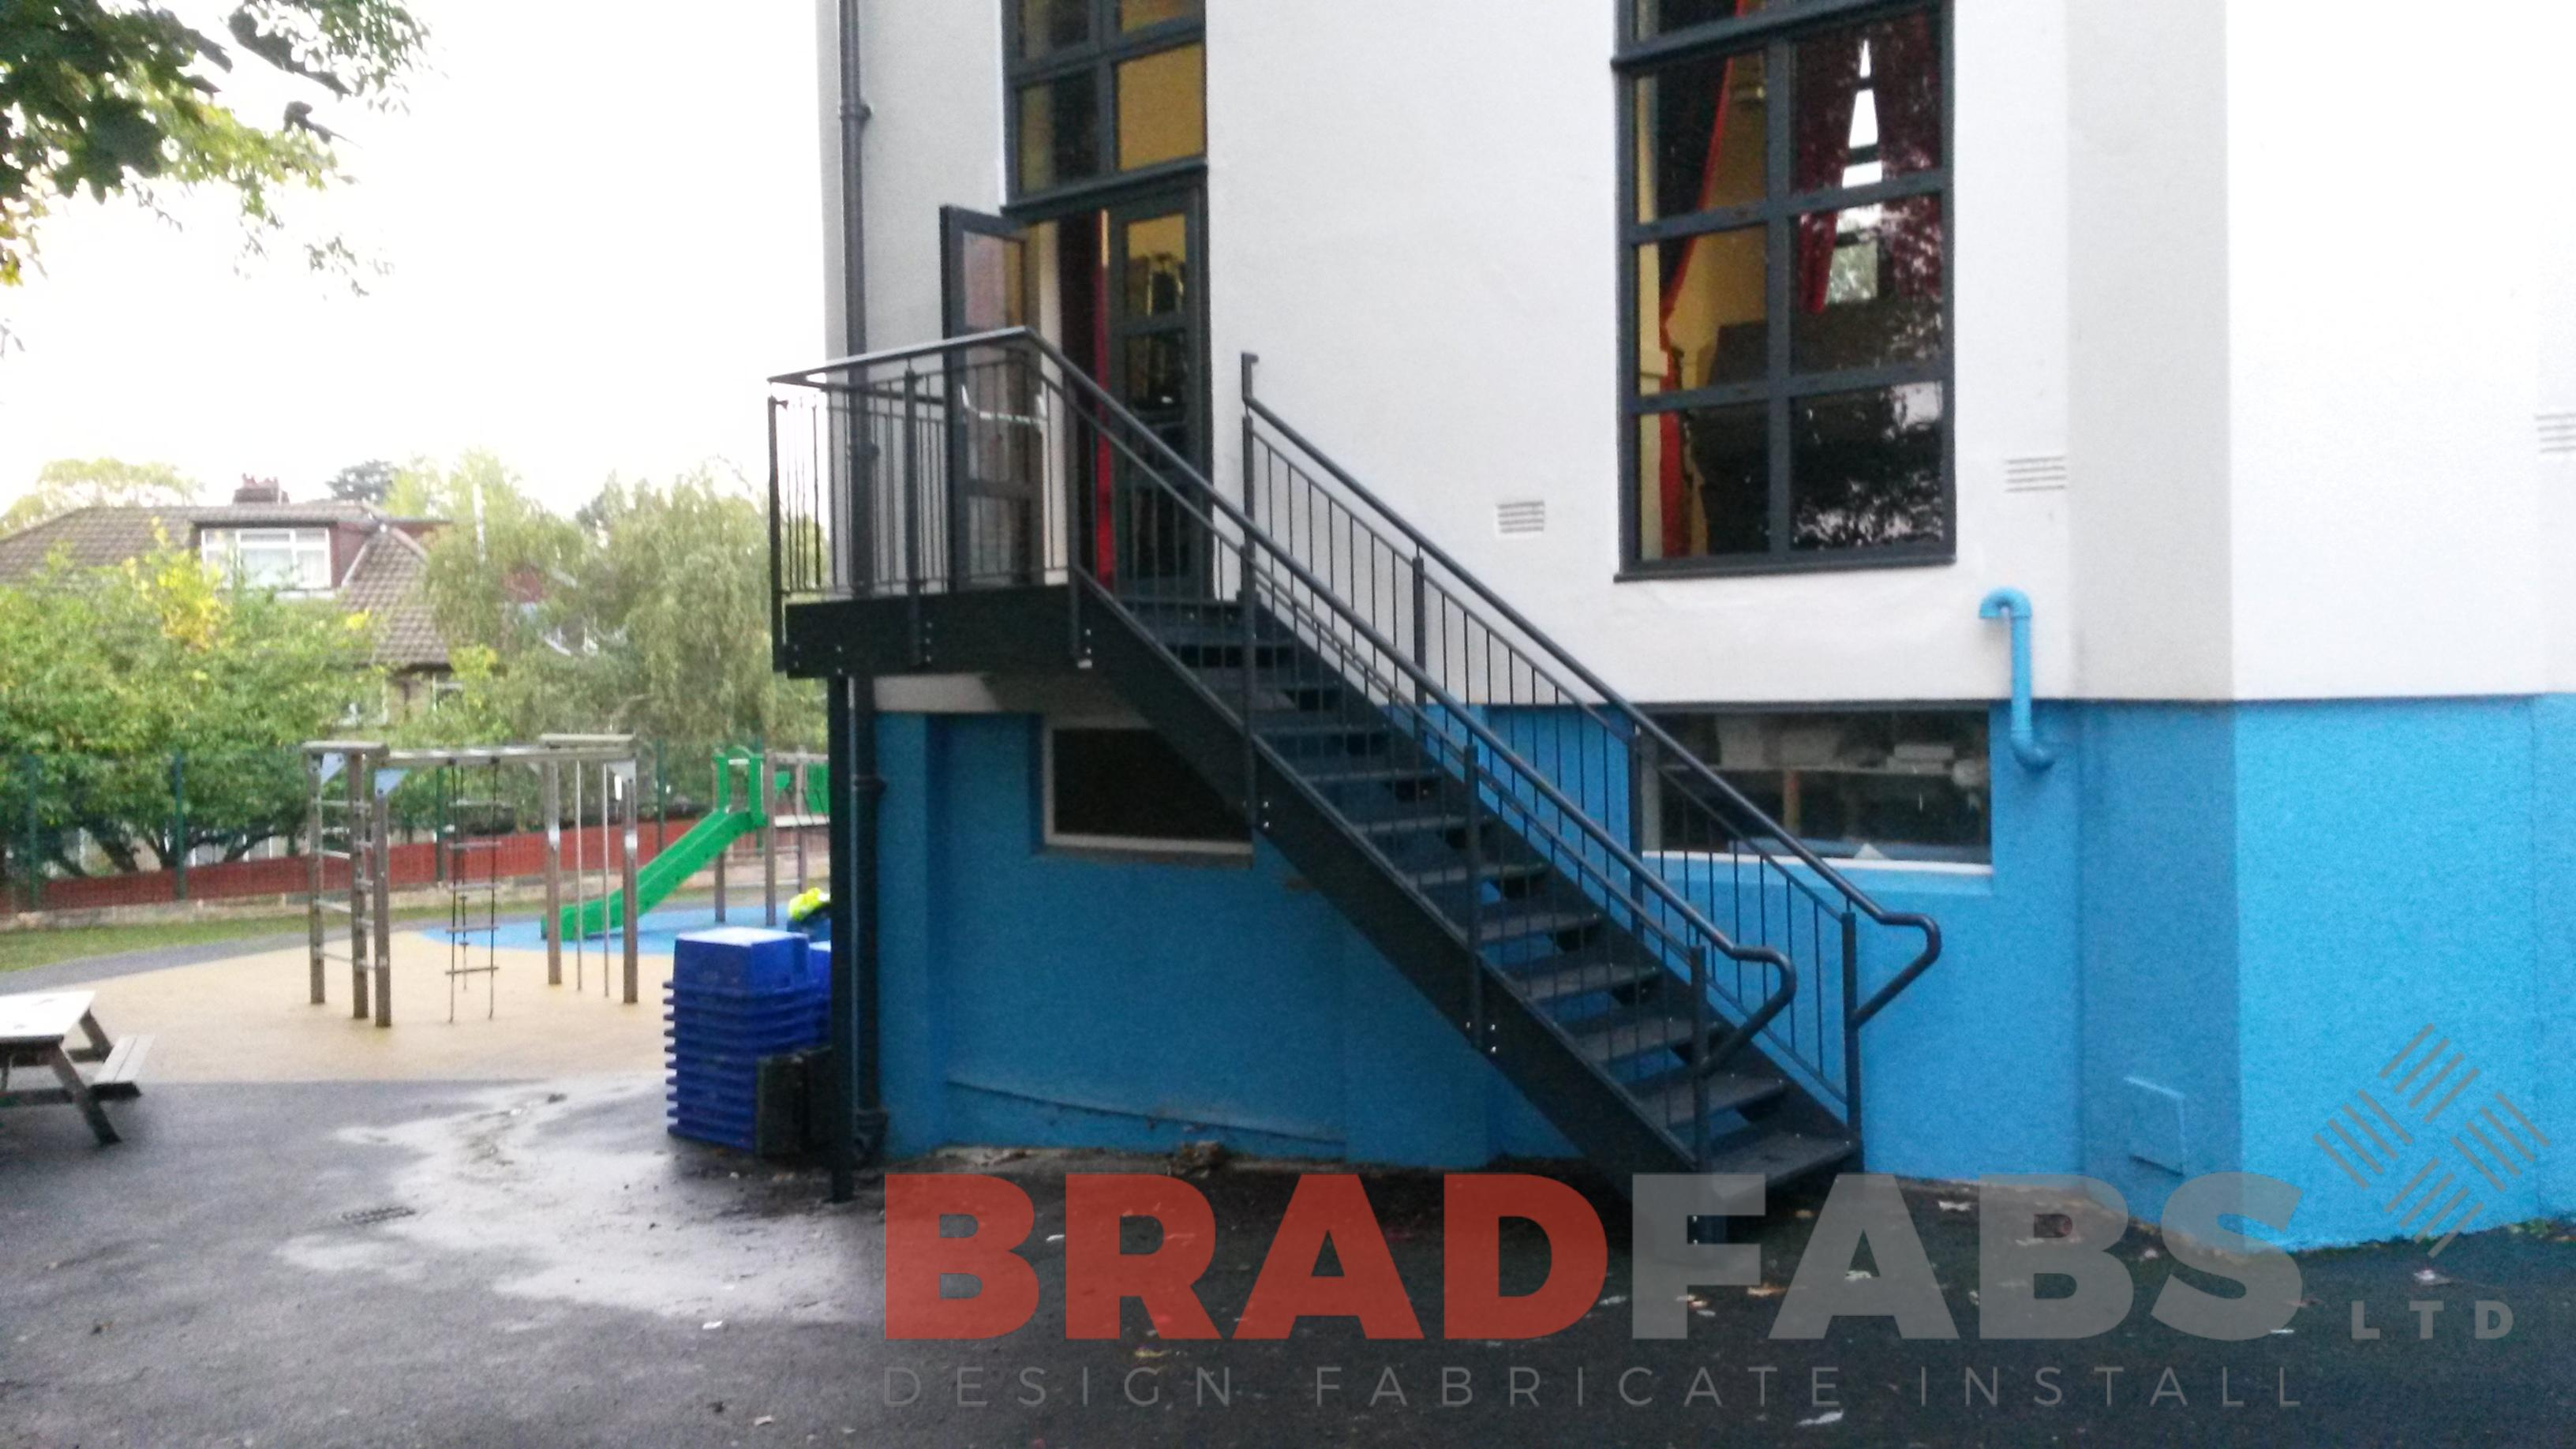 Steel access staircase for a School fabricated and installed by Bradfabs